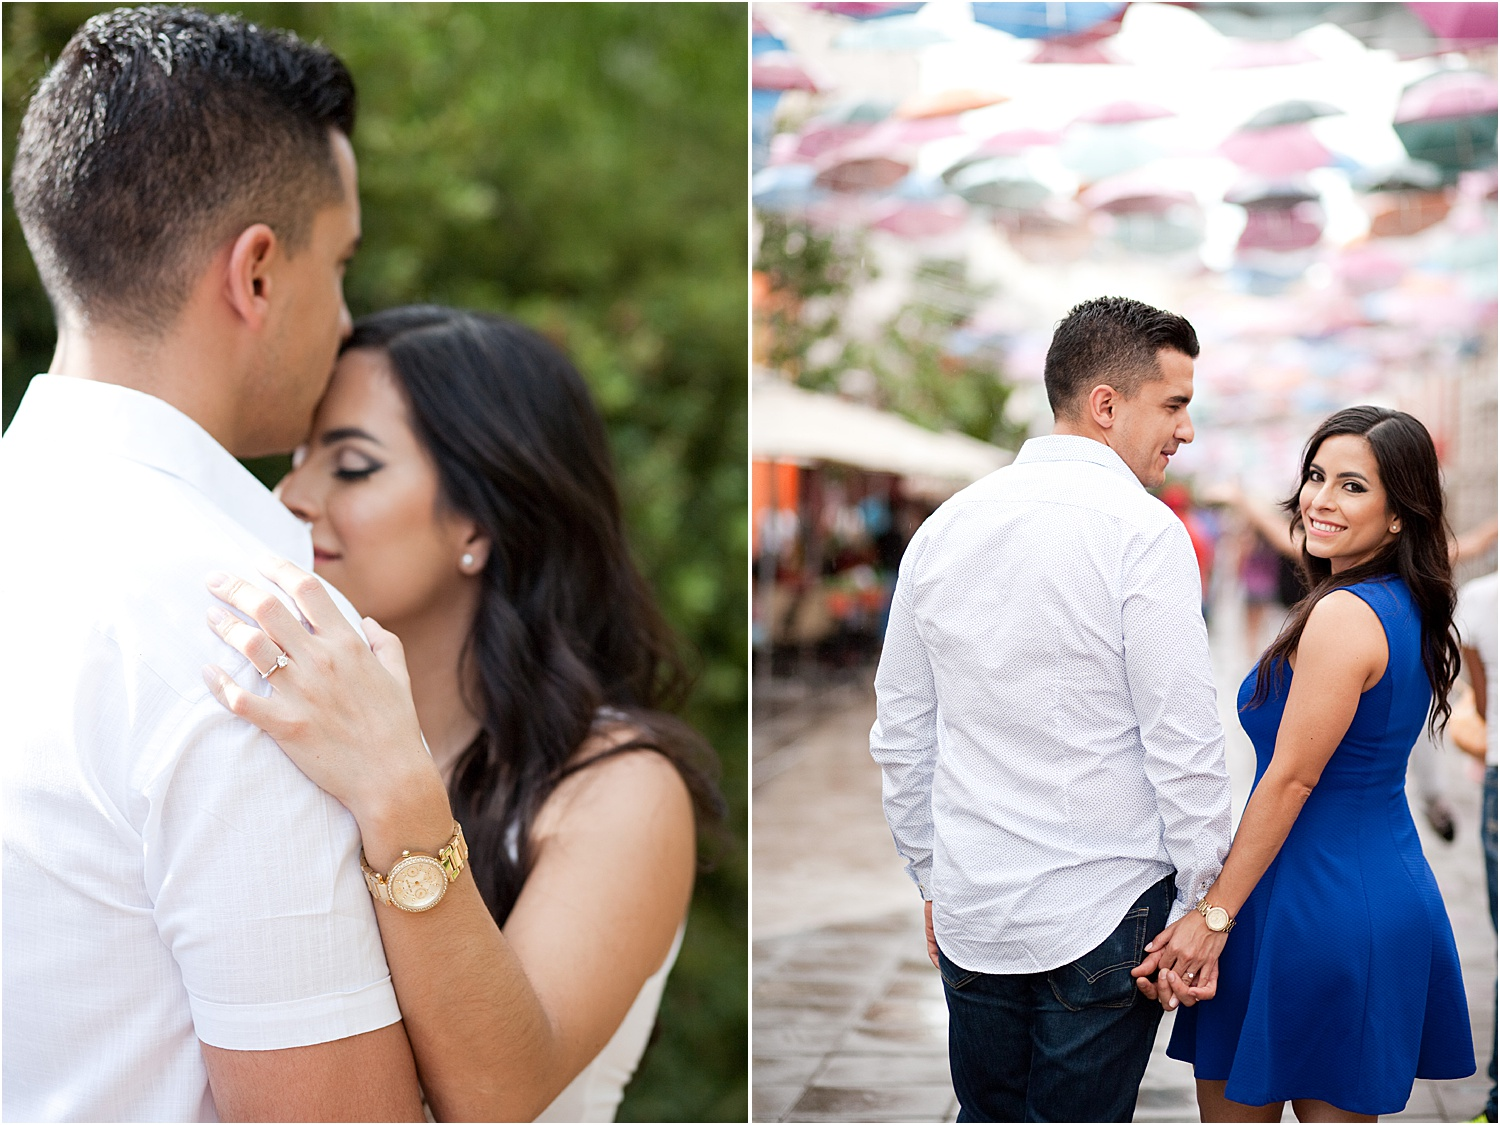 14 - Guide to the Best Poses for Engagement Photos